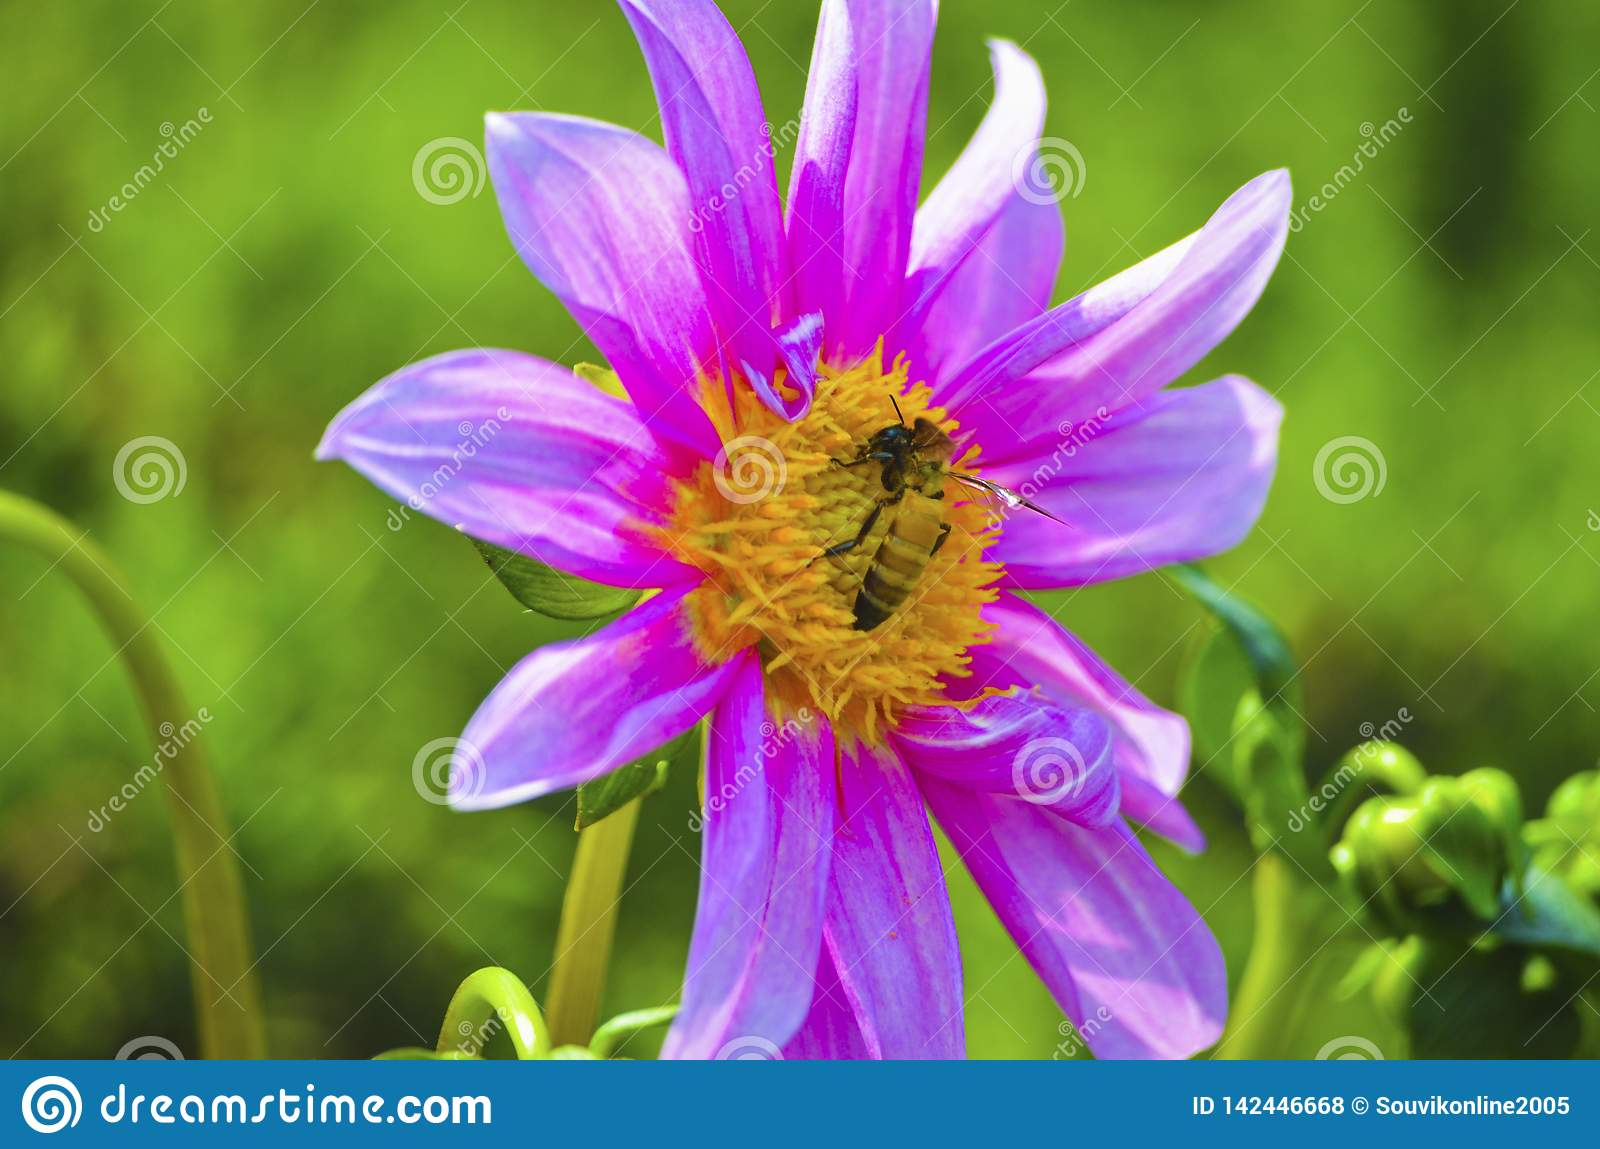 Yellow Insect on a violet flower with green isolated background